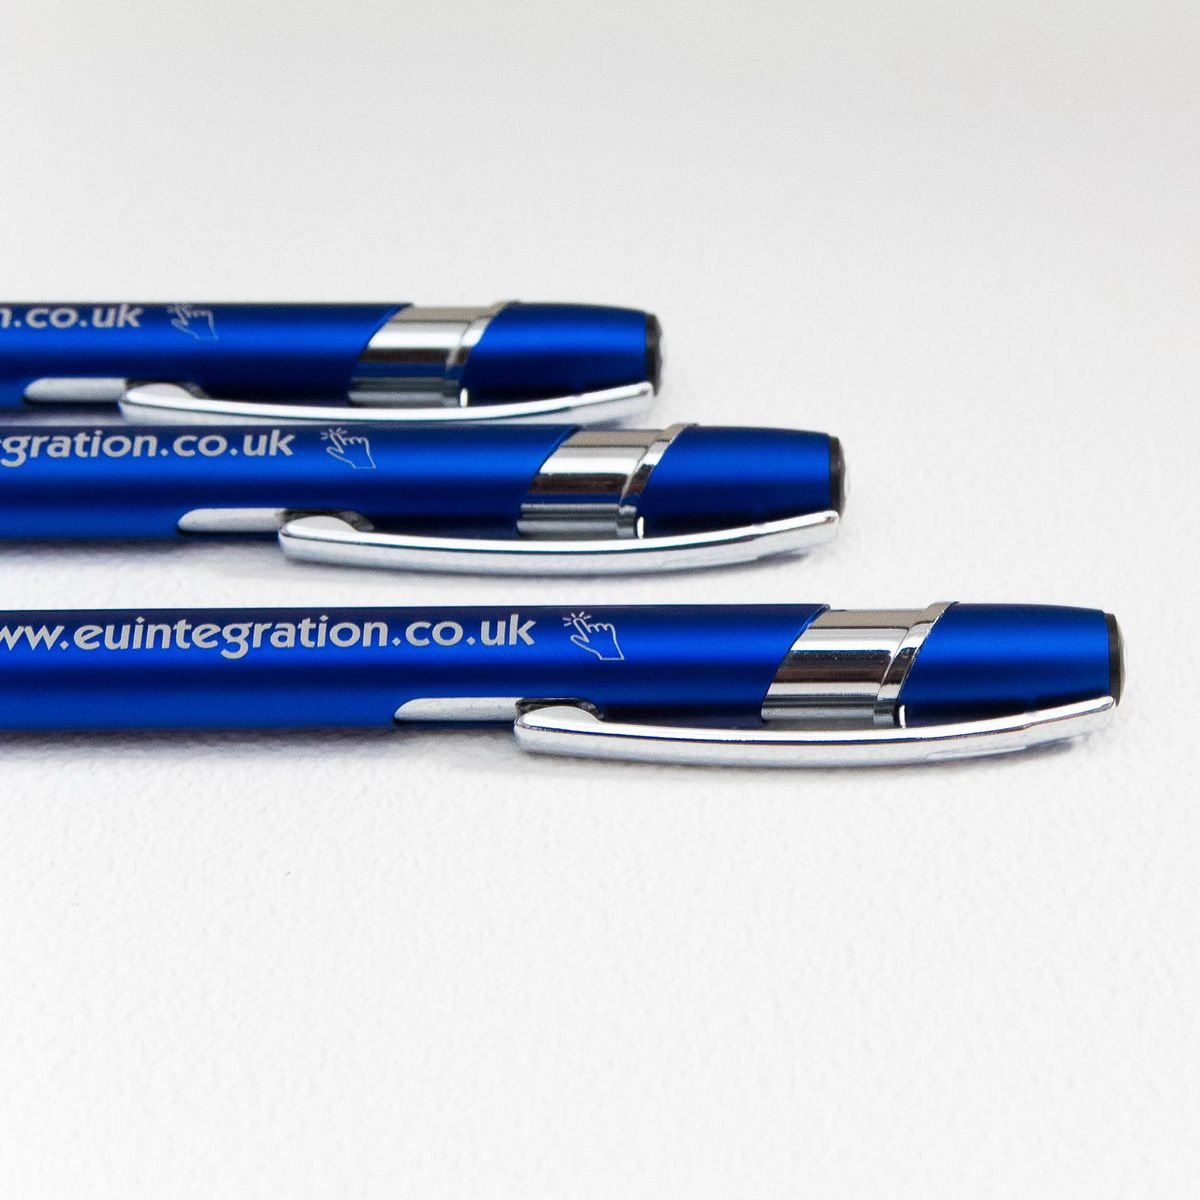 Custom-Printed-Ballpens-Engraved-Southampton-UK-Promotional-Pens-Keyrings-Notepads-2